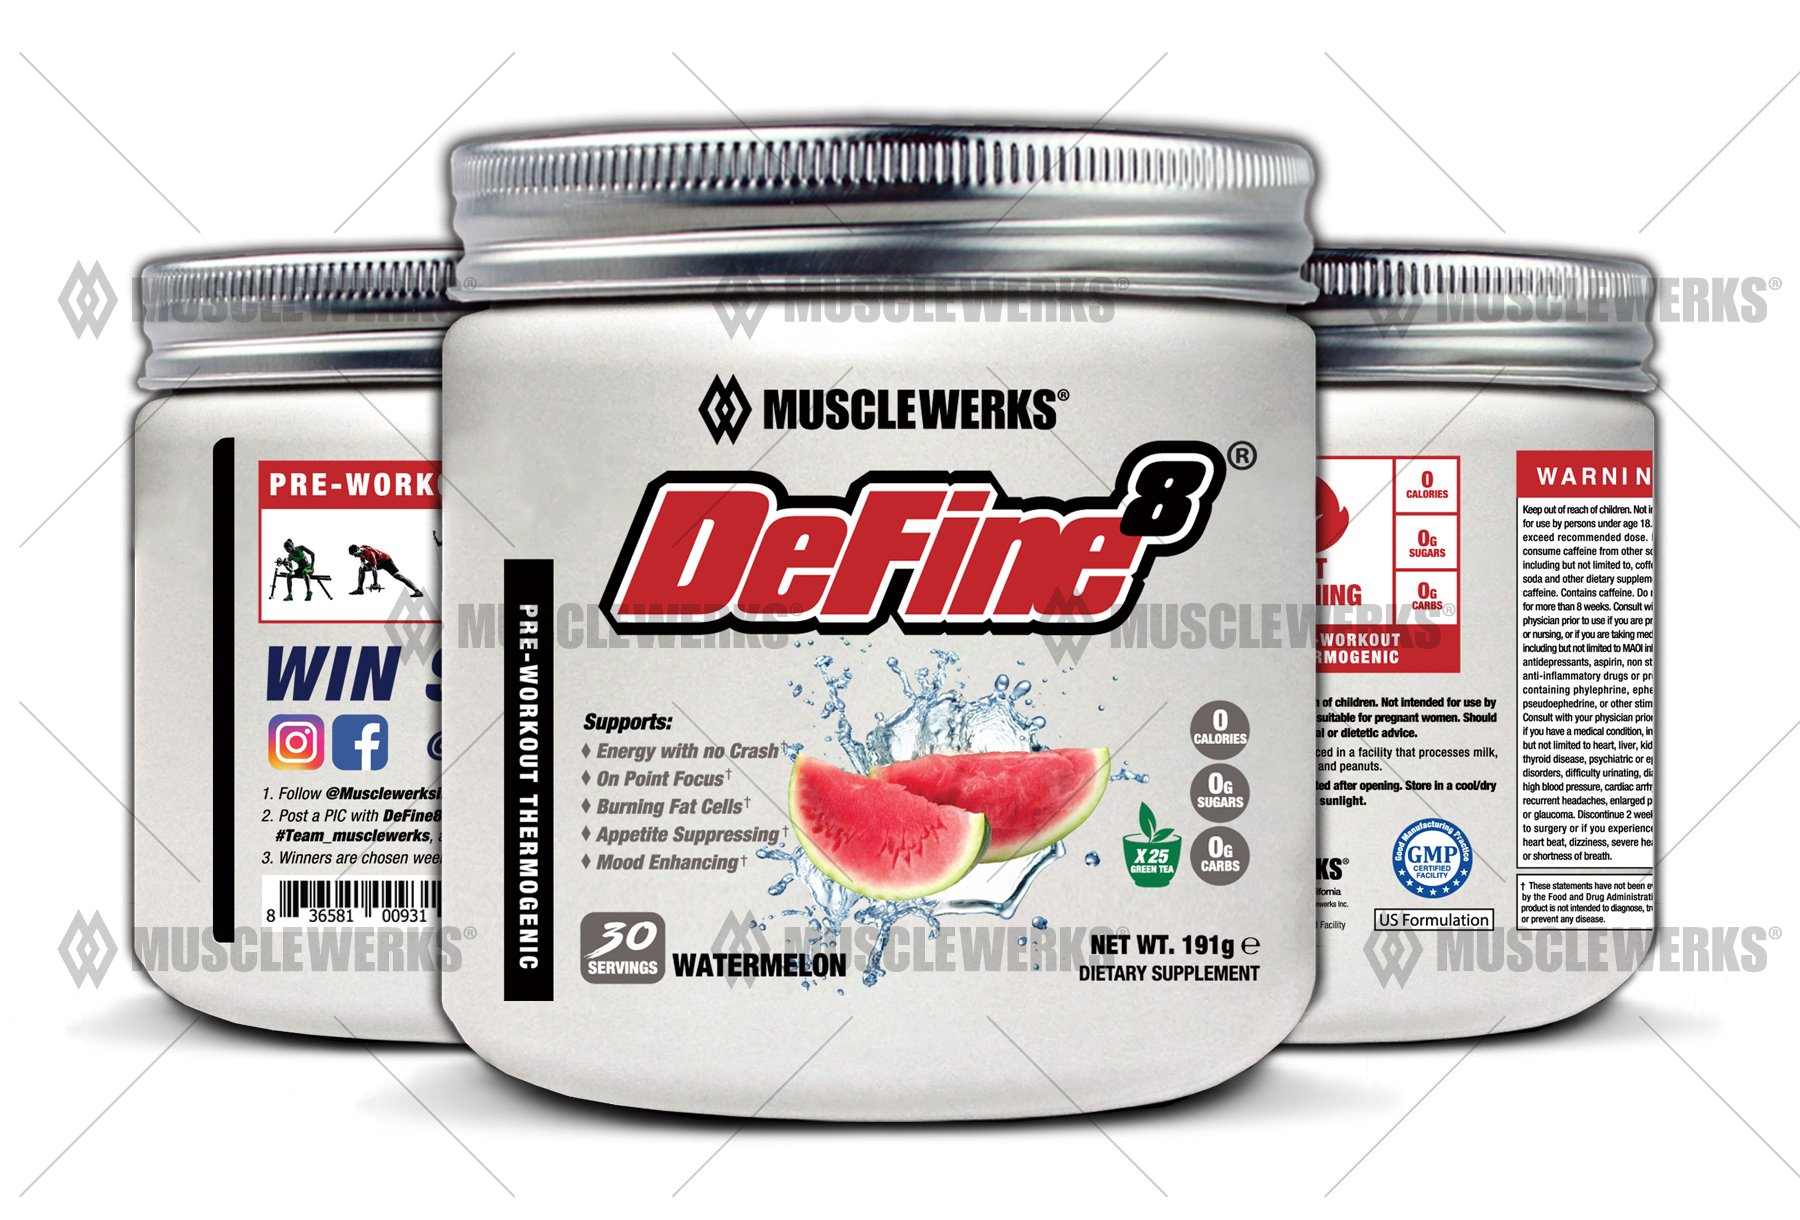 DeFine8: Watermelon - Fat Burner for Women and Men, Pre-Workout Thermogenic - NEW ADVANCED FORMULA, Appetite Suppressant, Boosts Metabolism & Curbs Sweet Cravings for Weight Loss.